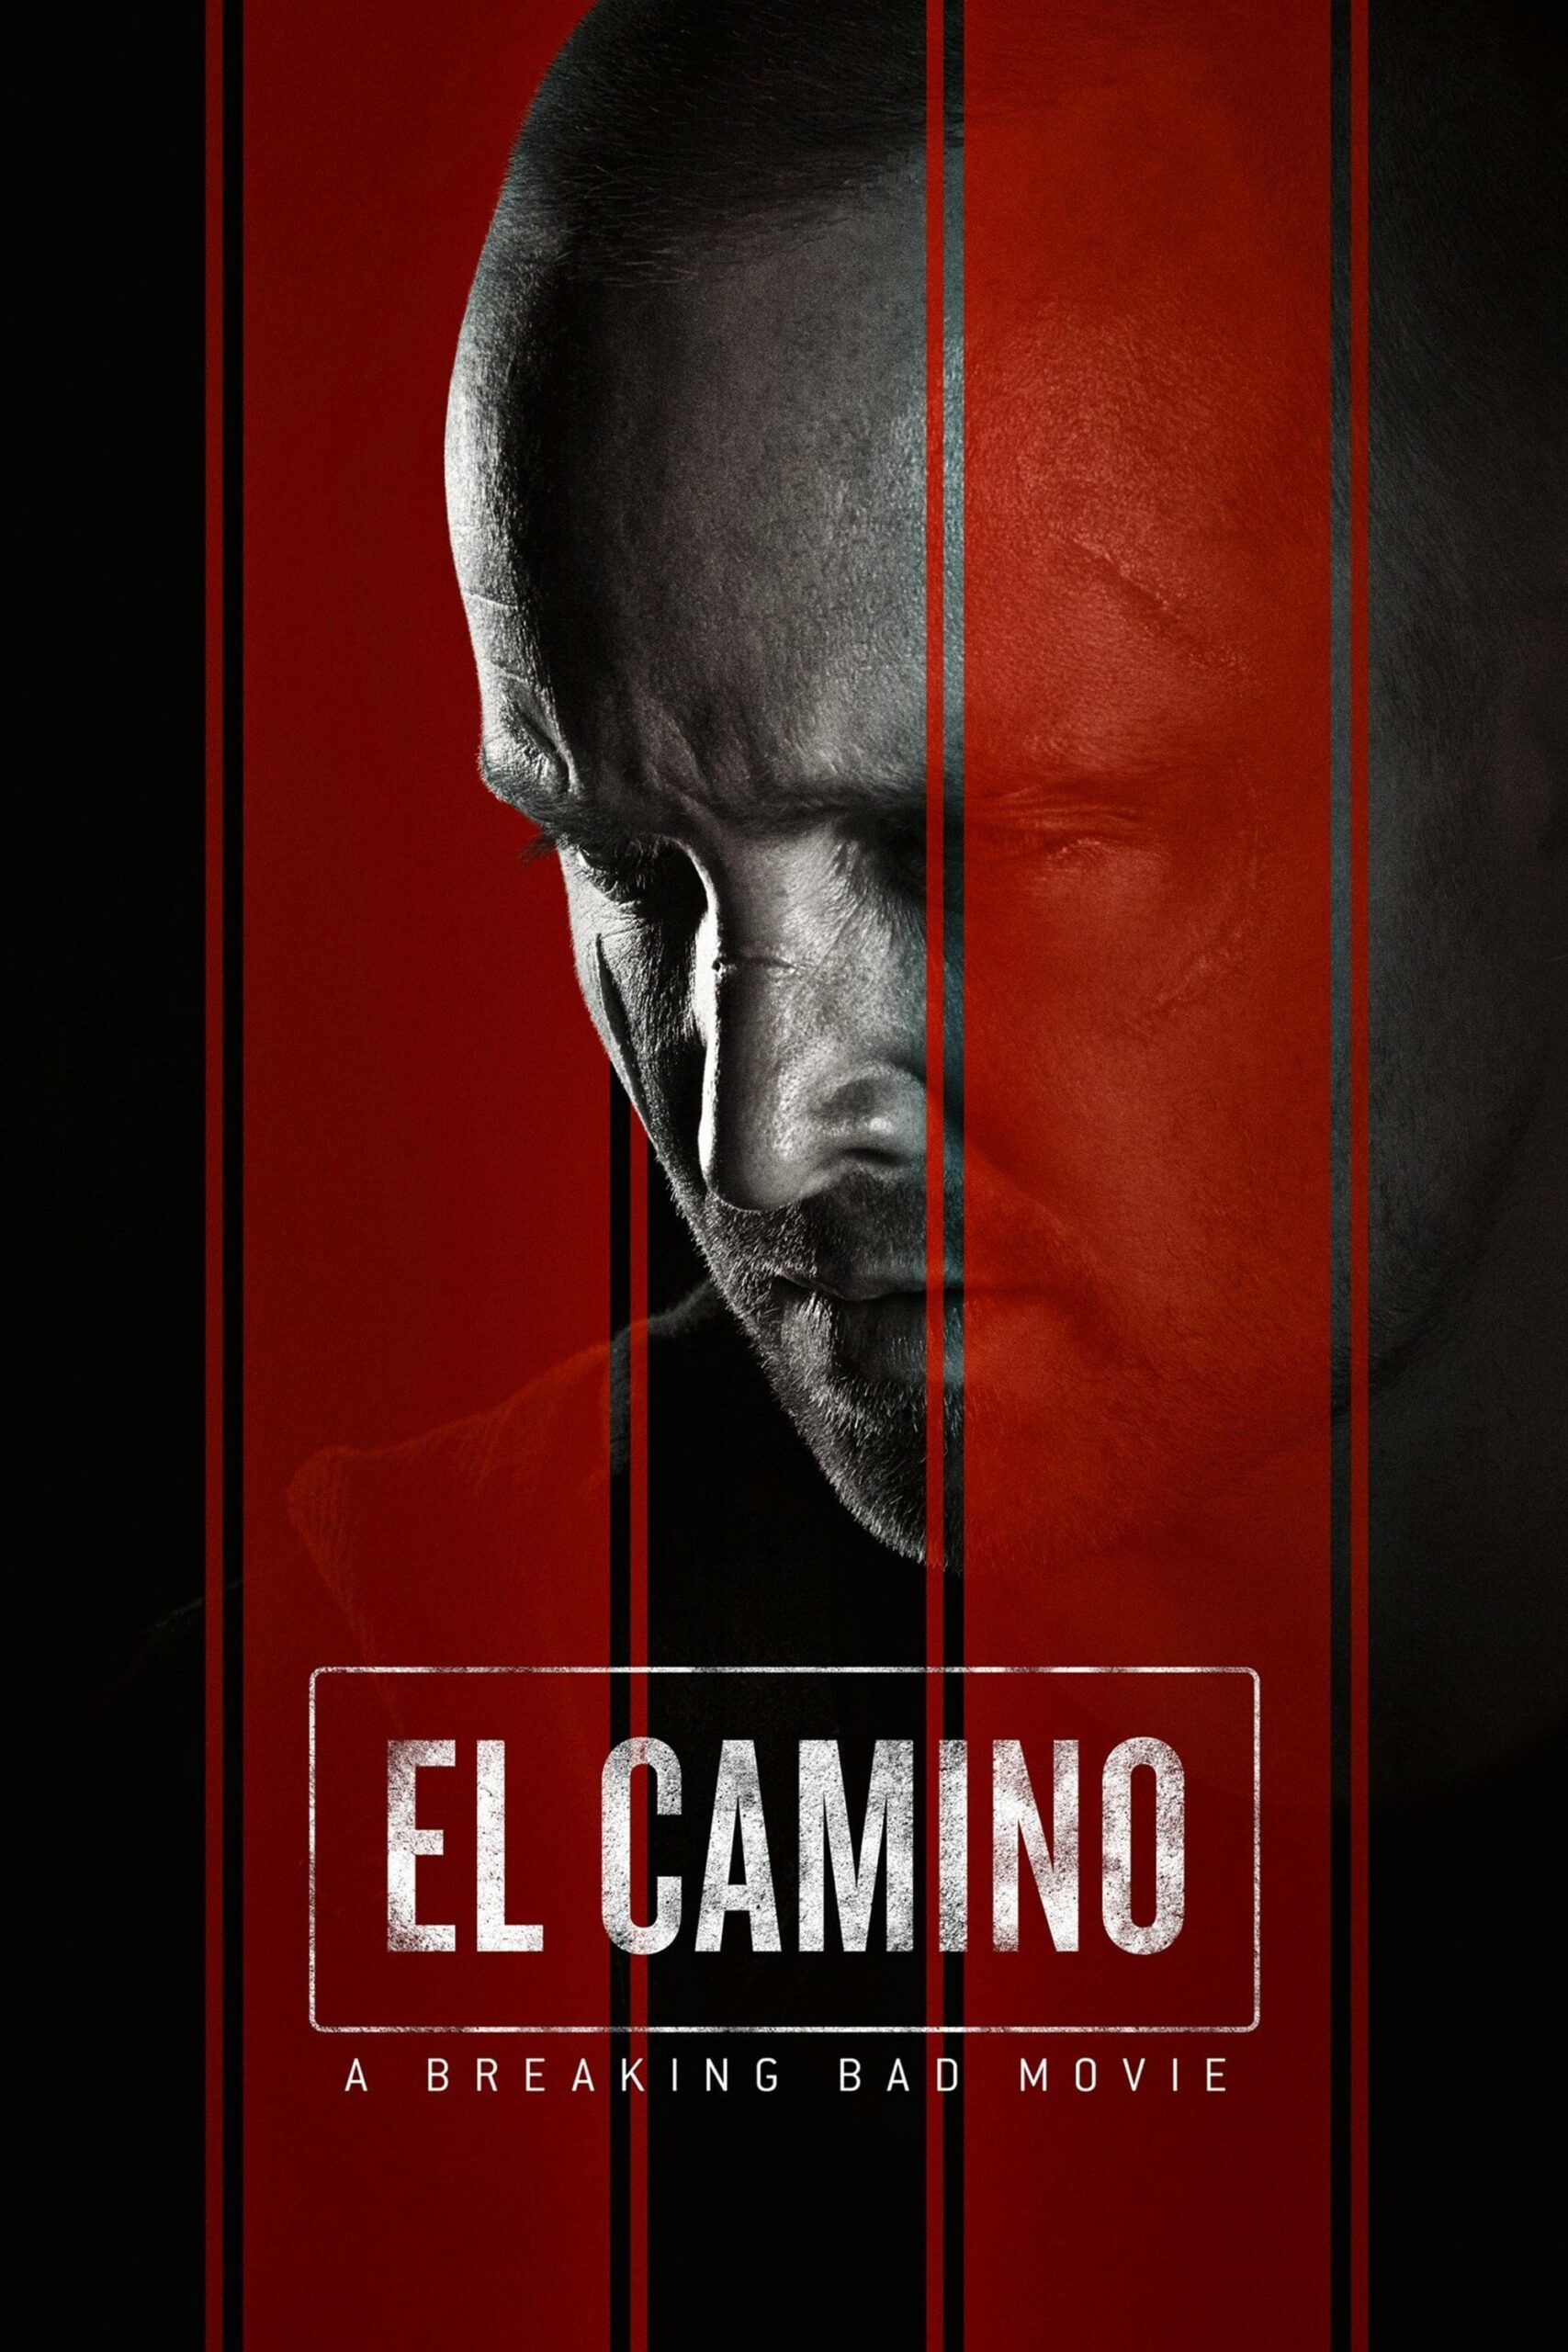 El Camino Breaking Bad Review